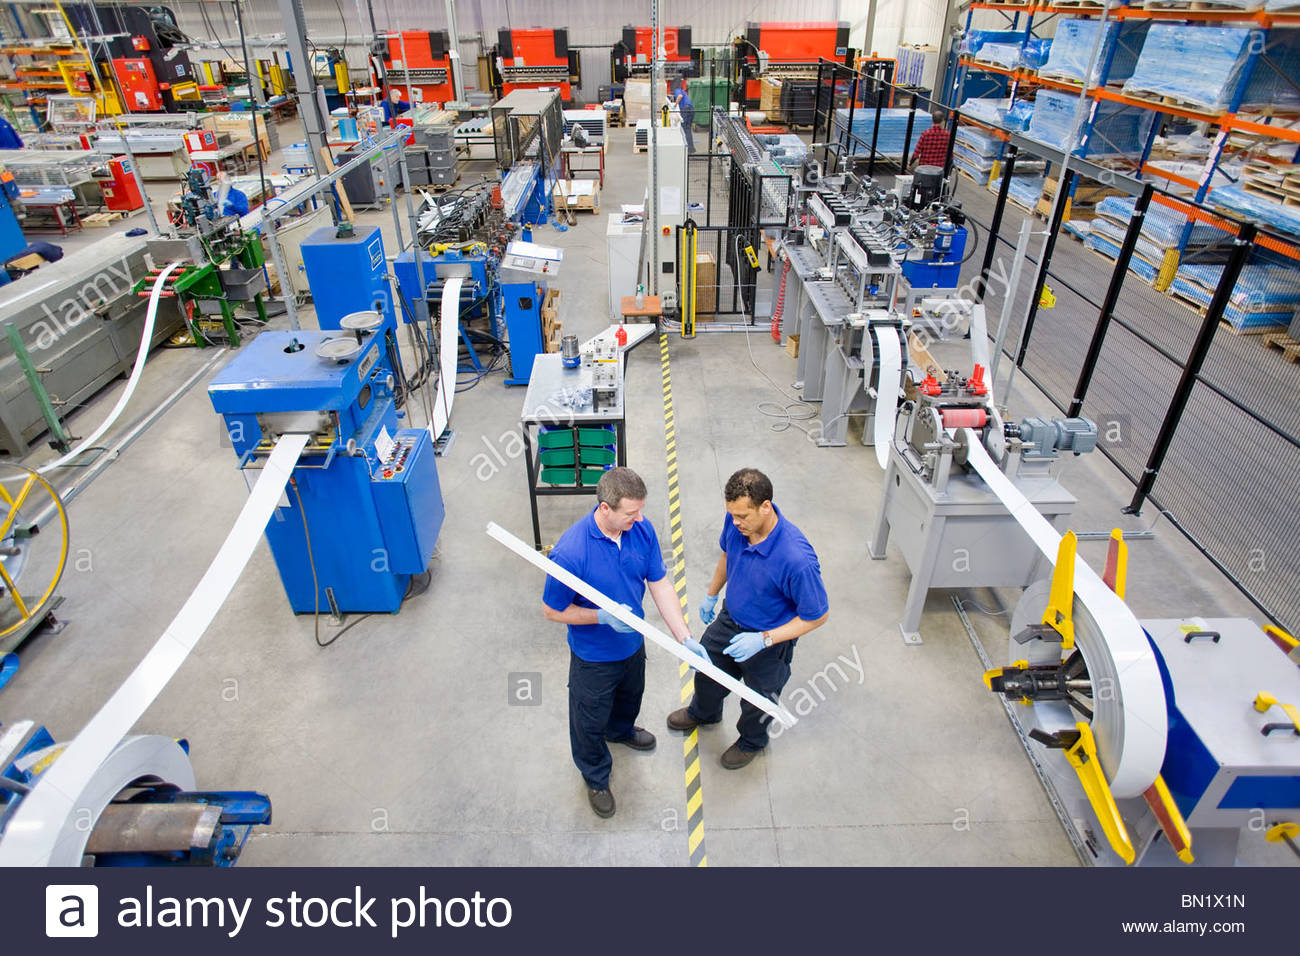 Workers inspecting aluminium light fitting in factory - Stock Image